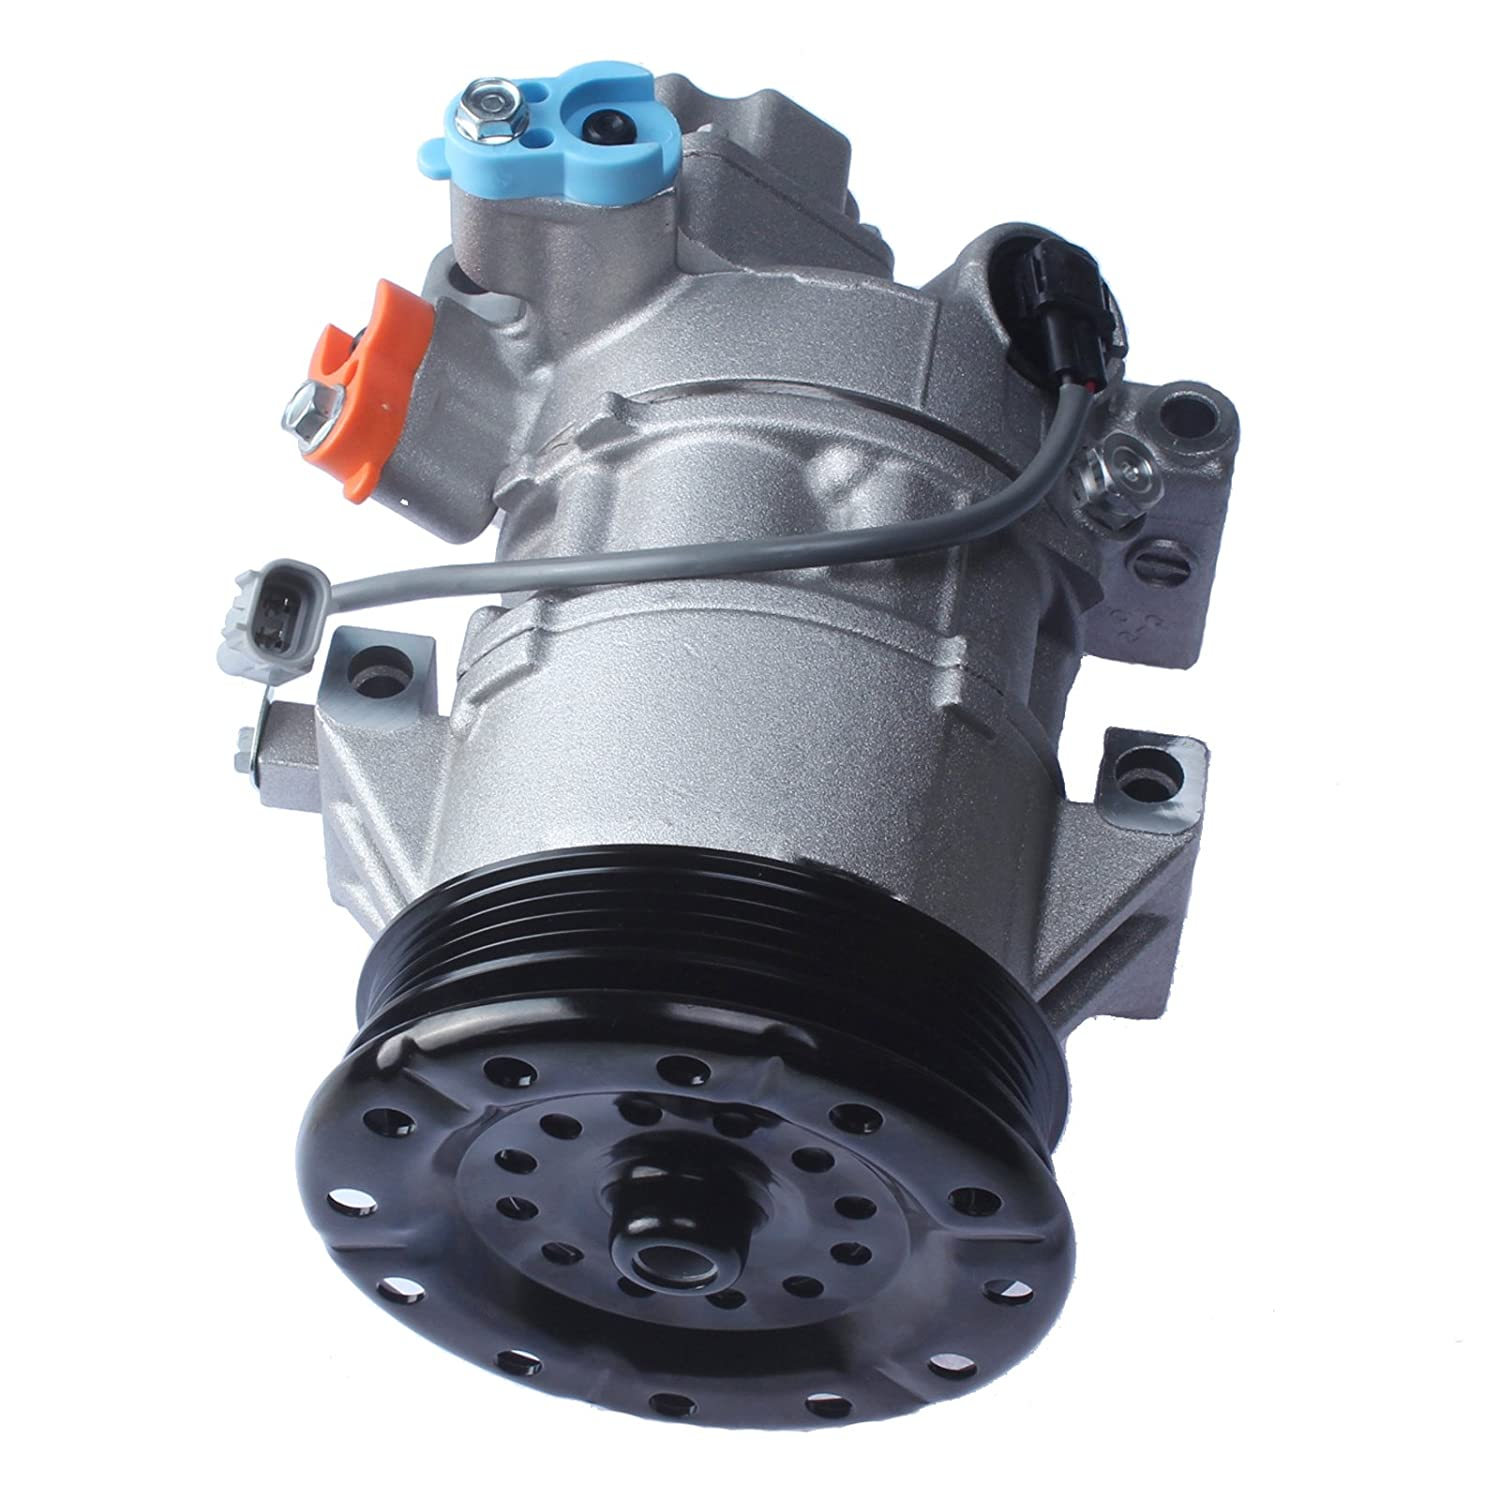 Amazon.com: Holdwell 4PK AC Compressor 88310-52550 88310-52492 for Toyota yaris 1.3 Denso 5SER09C: Automotive